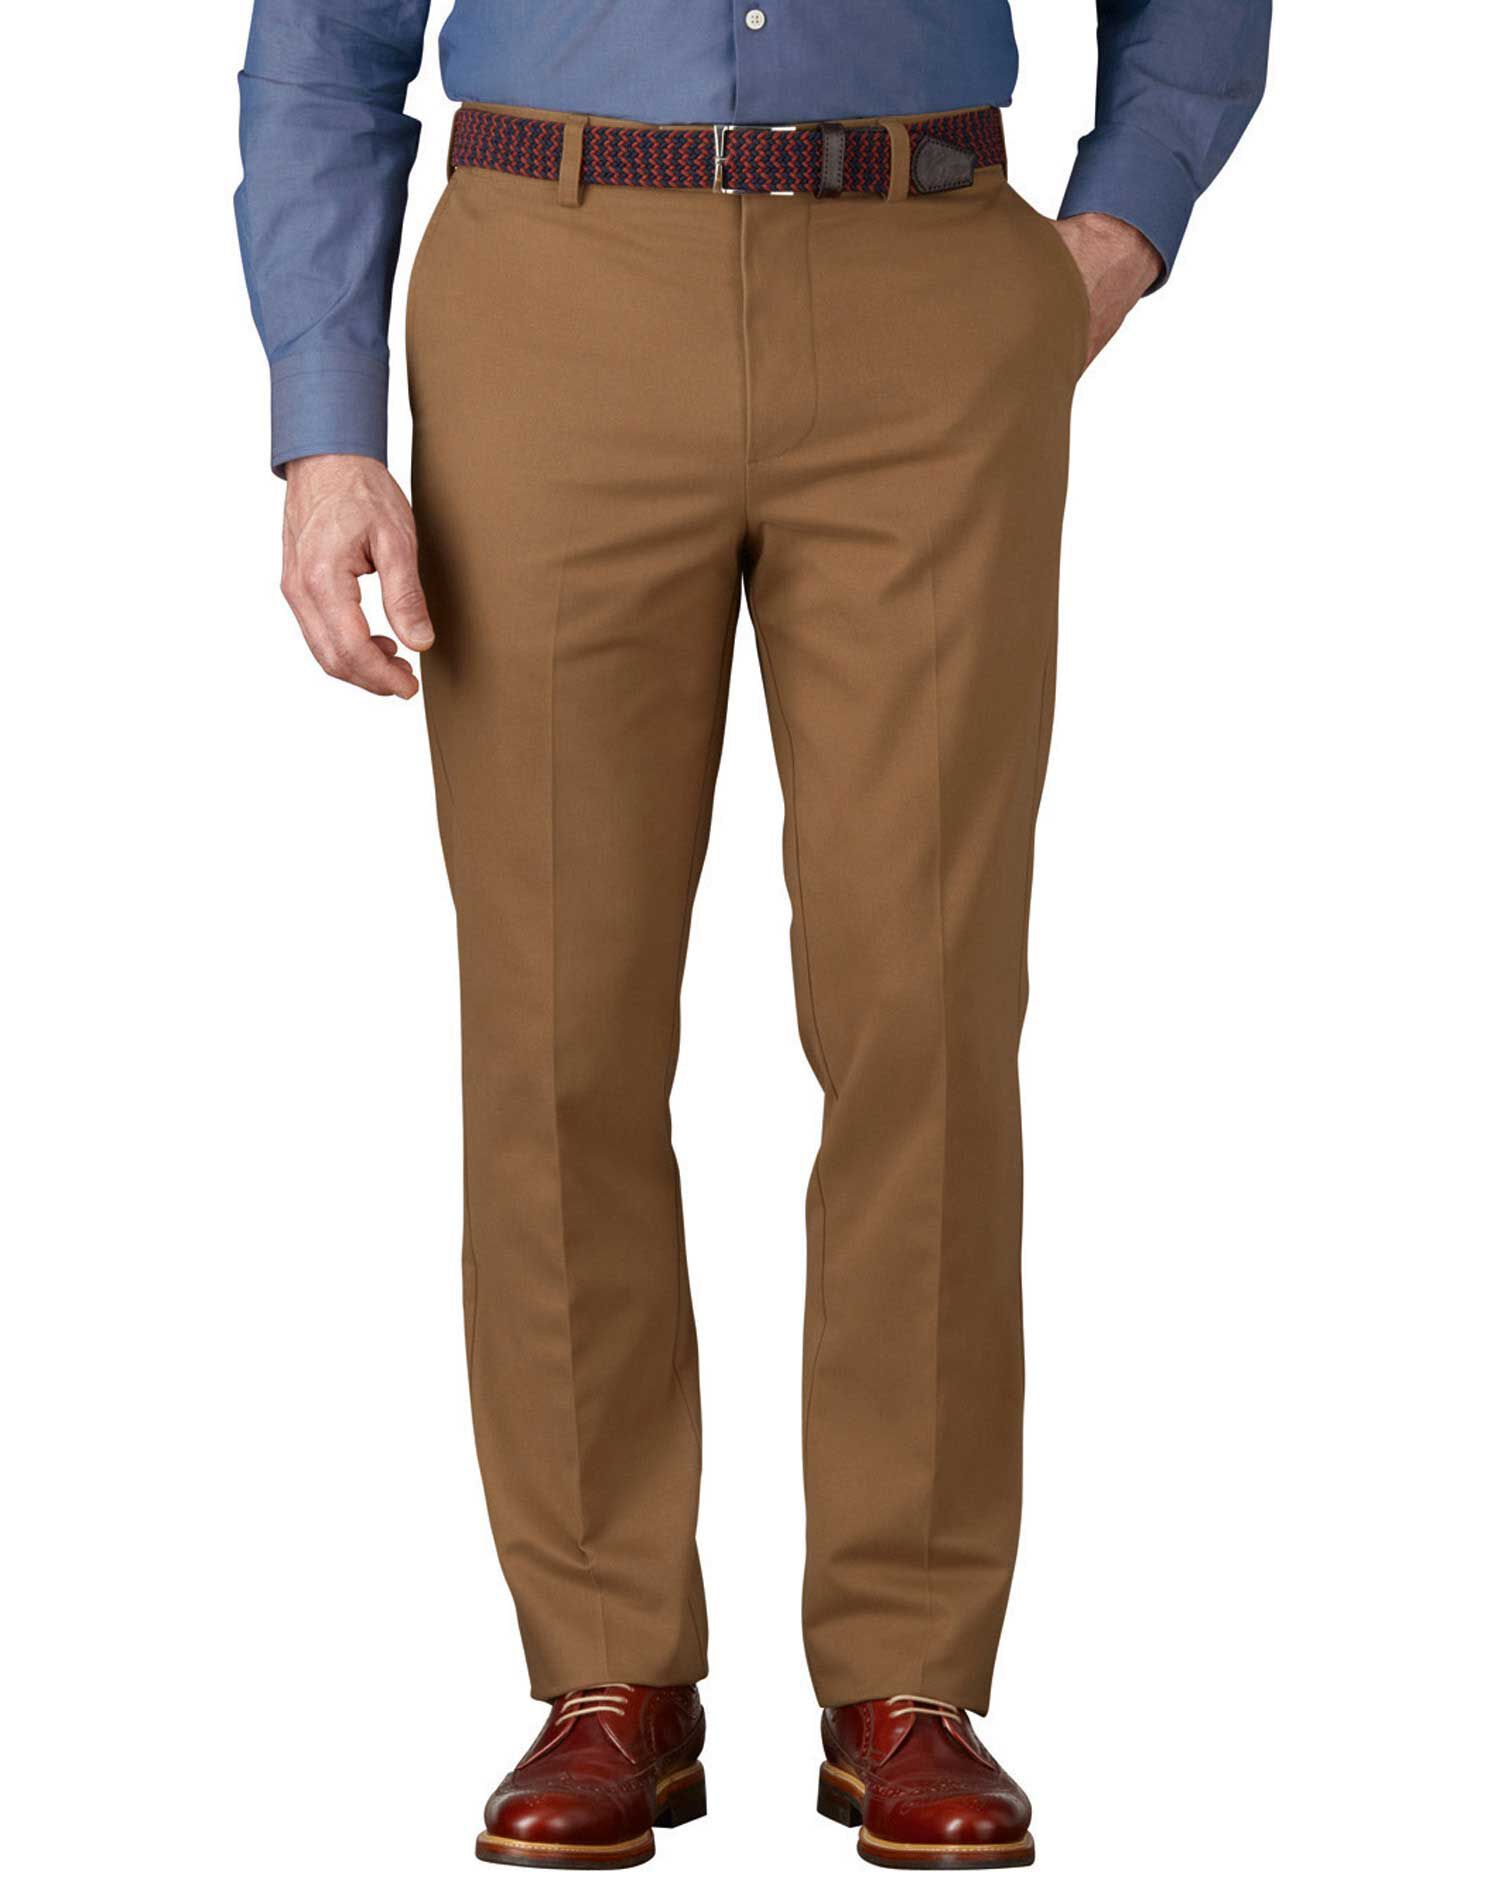 Camel Slim Fit Flat Front Non-Iron Cotton Chino Trousers Size W34 L30 by Charles Tyrwhitt